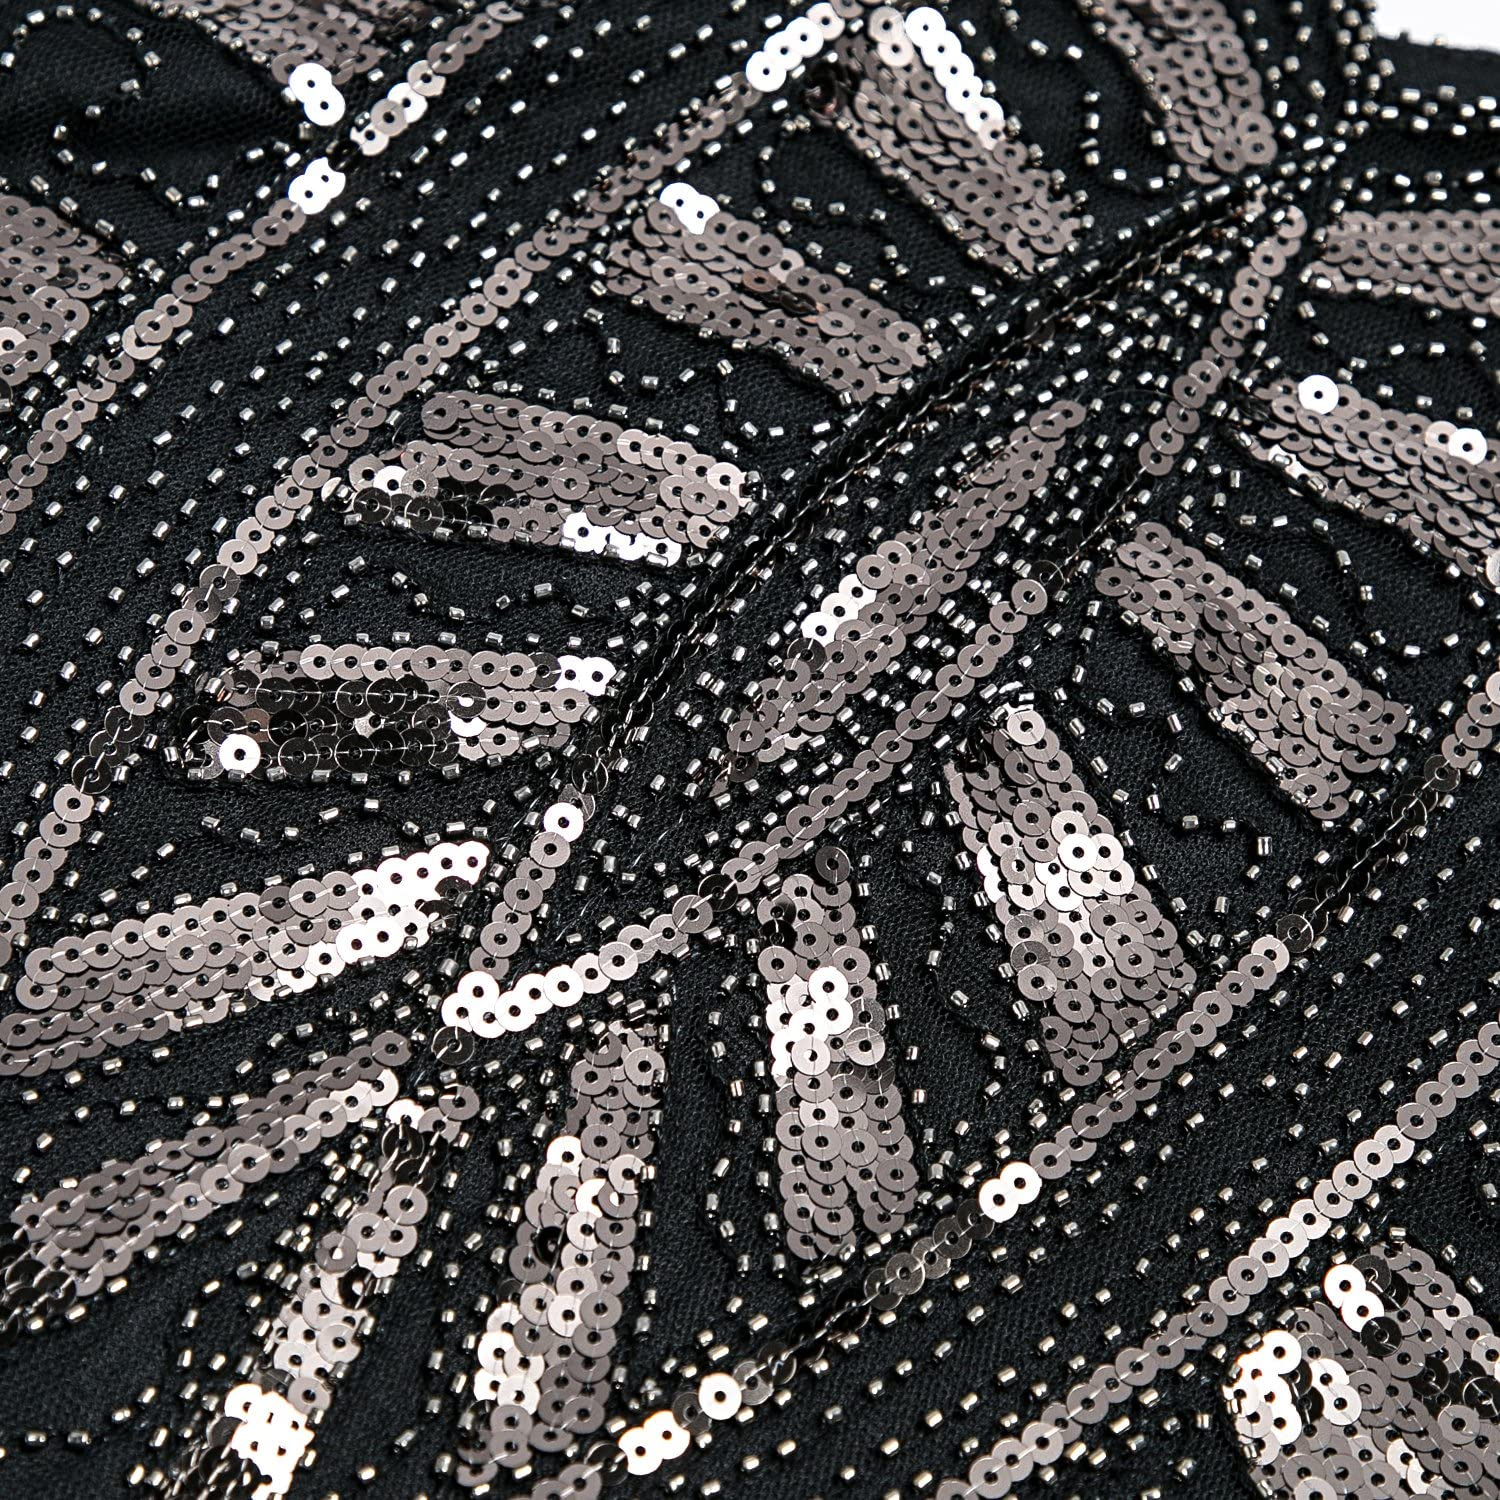 Metme 1920s Inspired Fringe Embellished Gatsby Flapper Midi Dress Prom Party